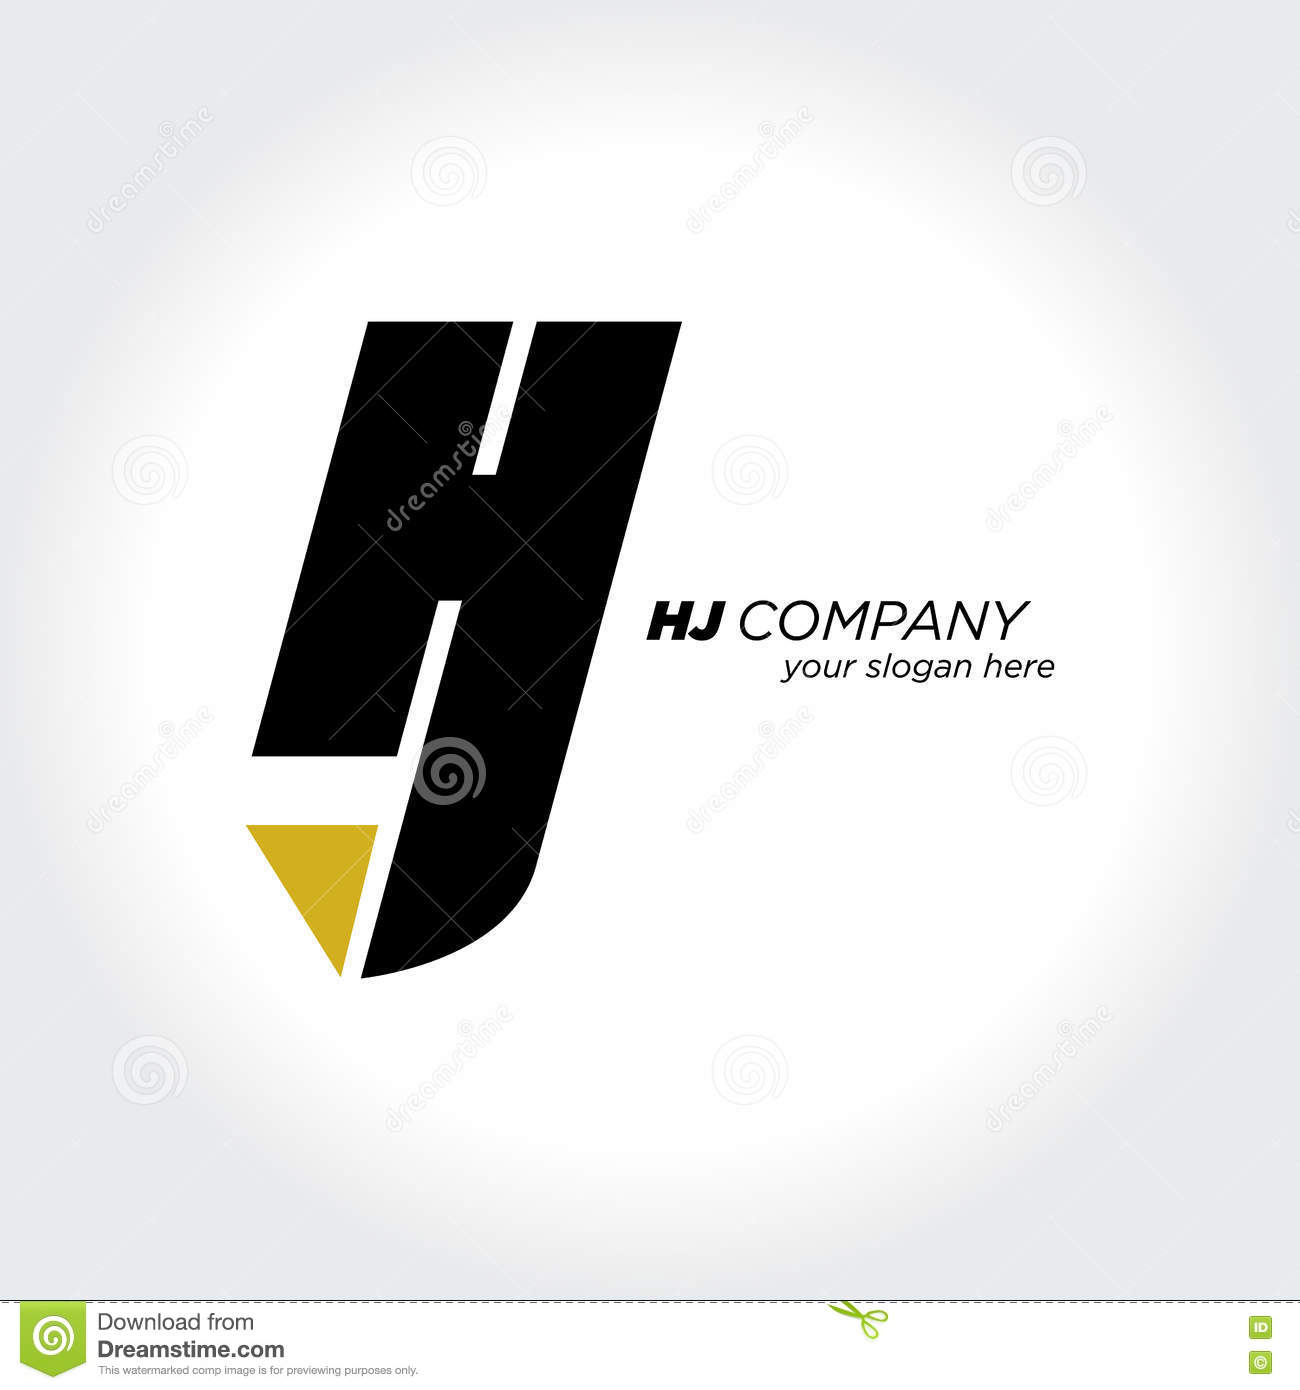 Stylized Letter H And J Symbol Creative Design Vector Stock Vector